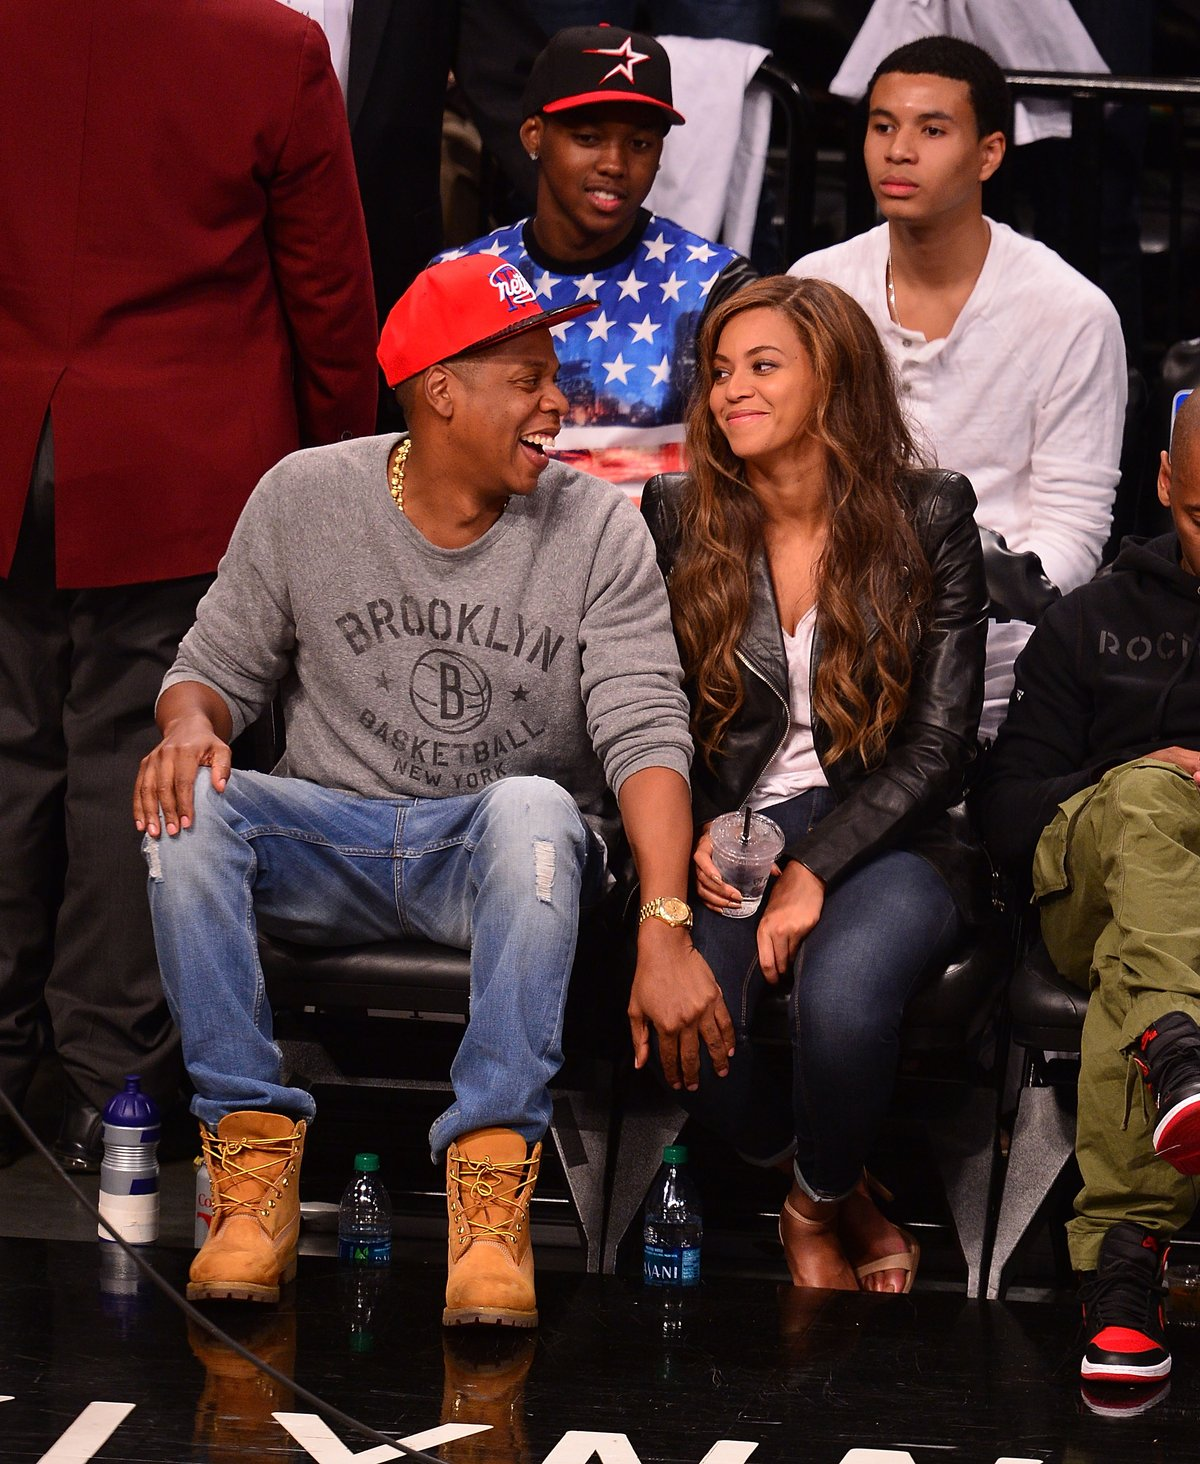 Jay Z and Beyonce at the Nets game